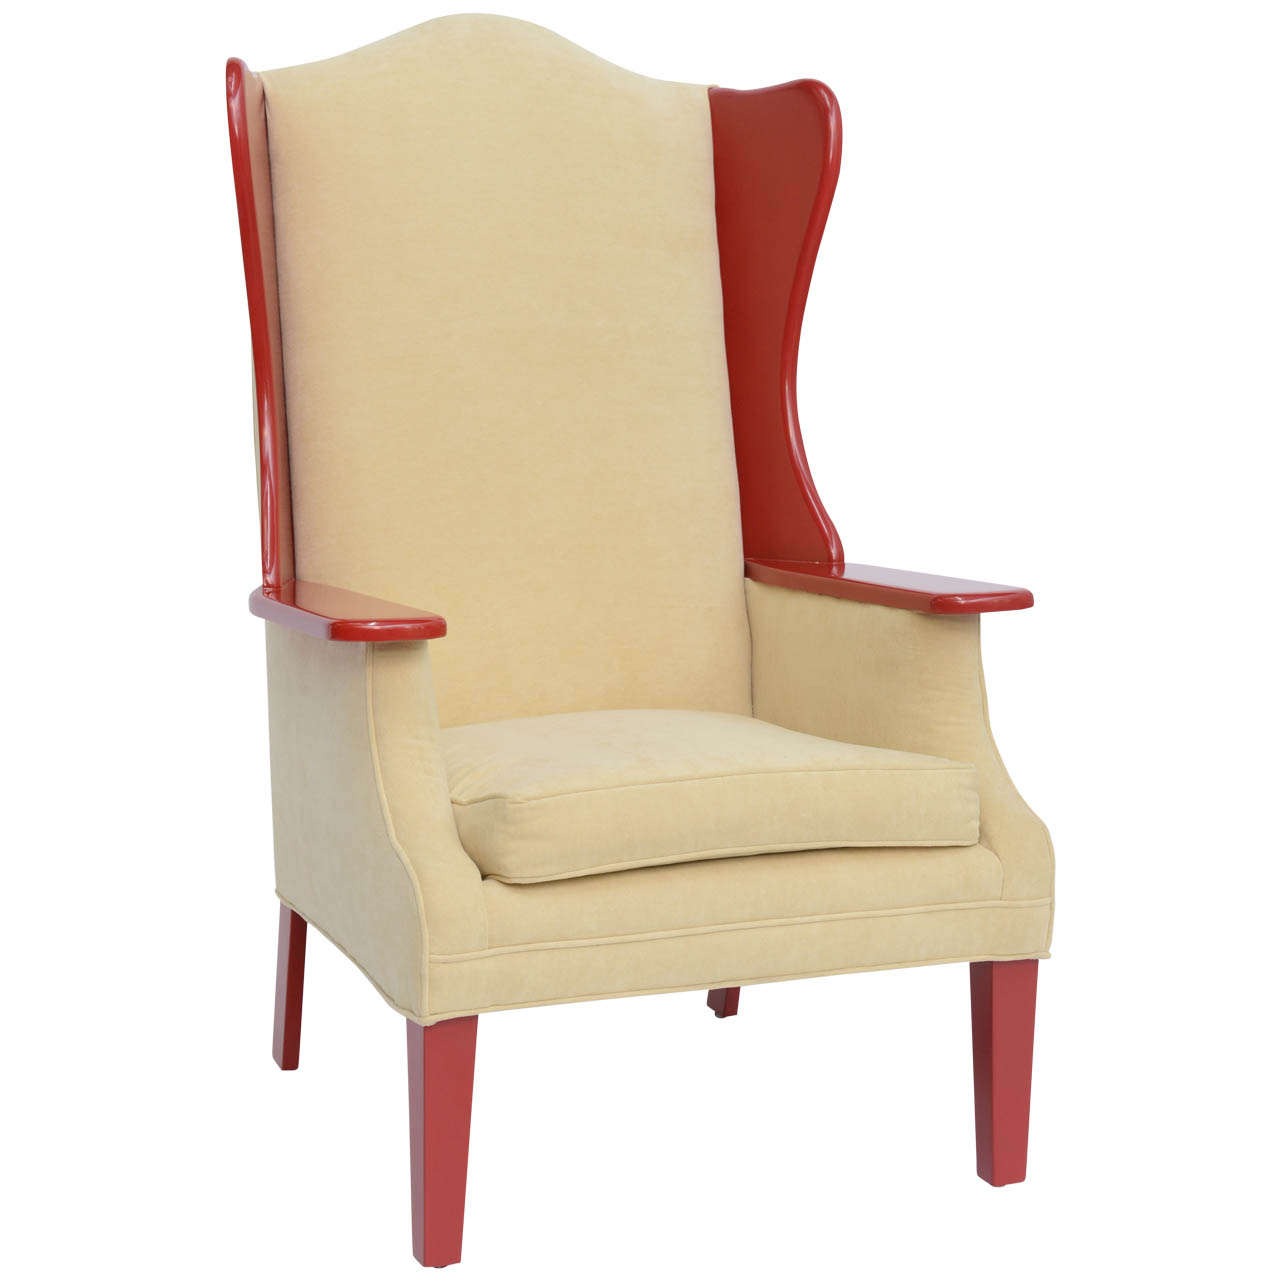 1950s Modern High Back Red Lacquered Wing Back Armchair For Sale